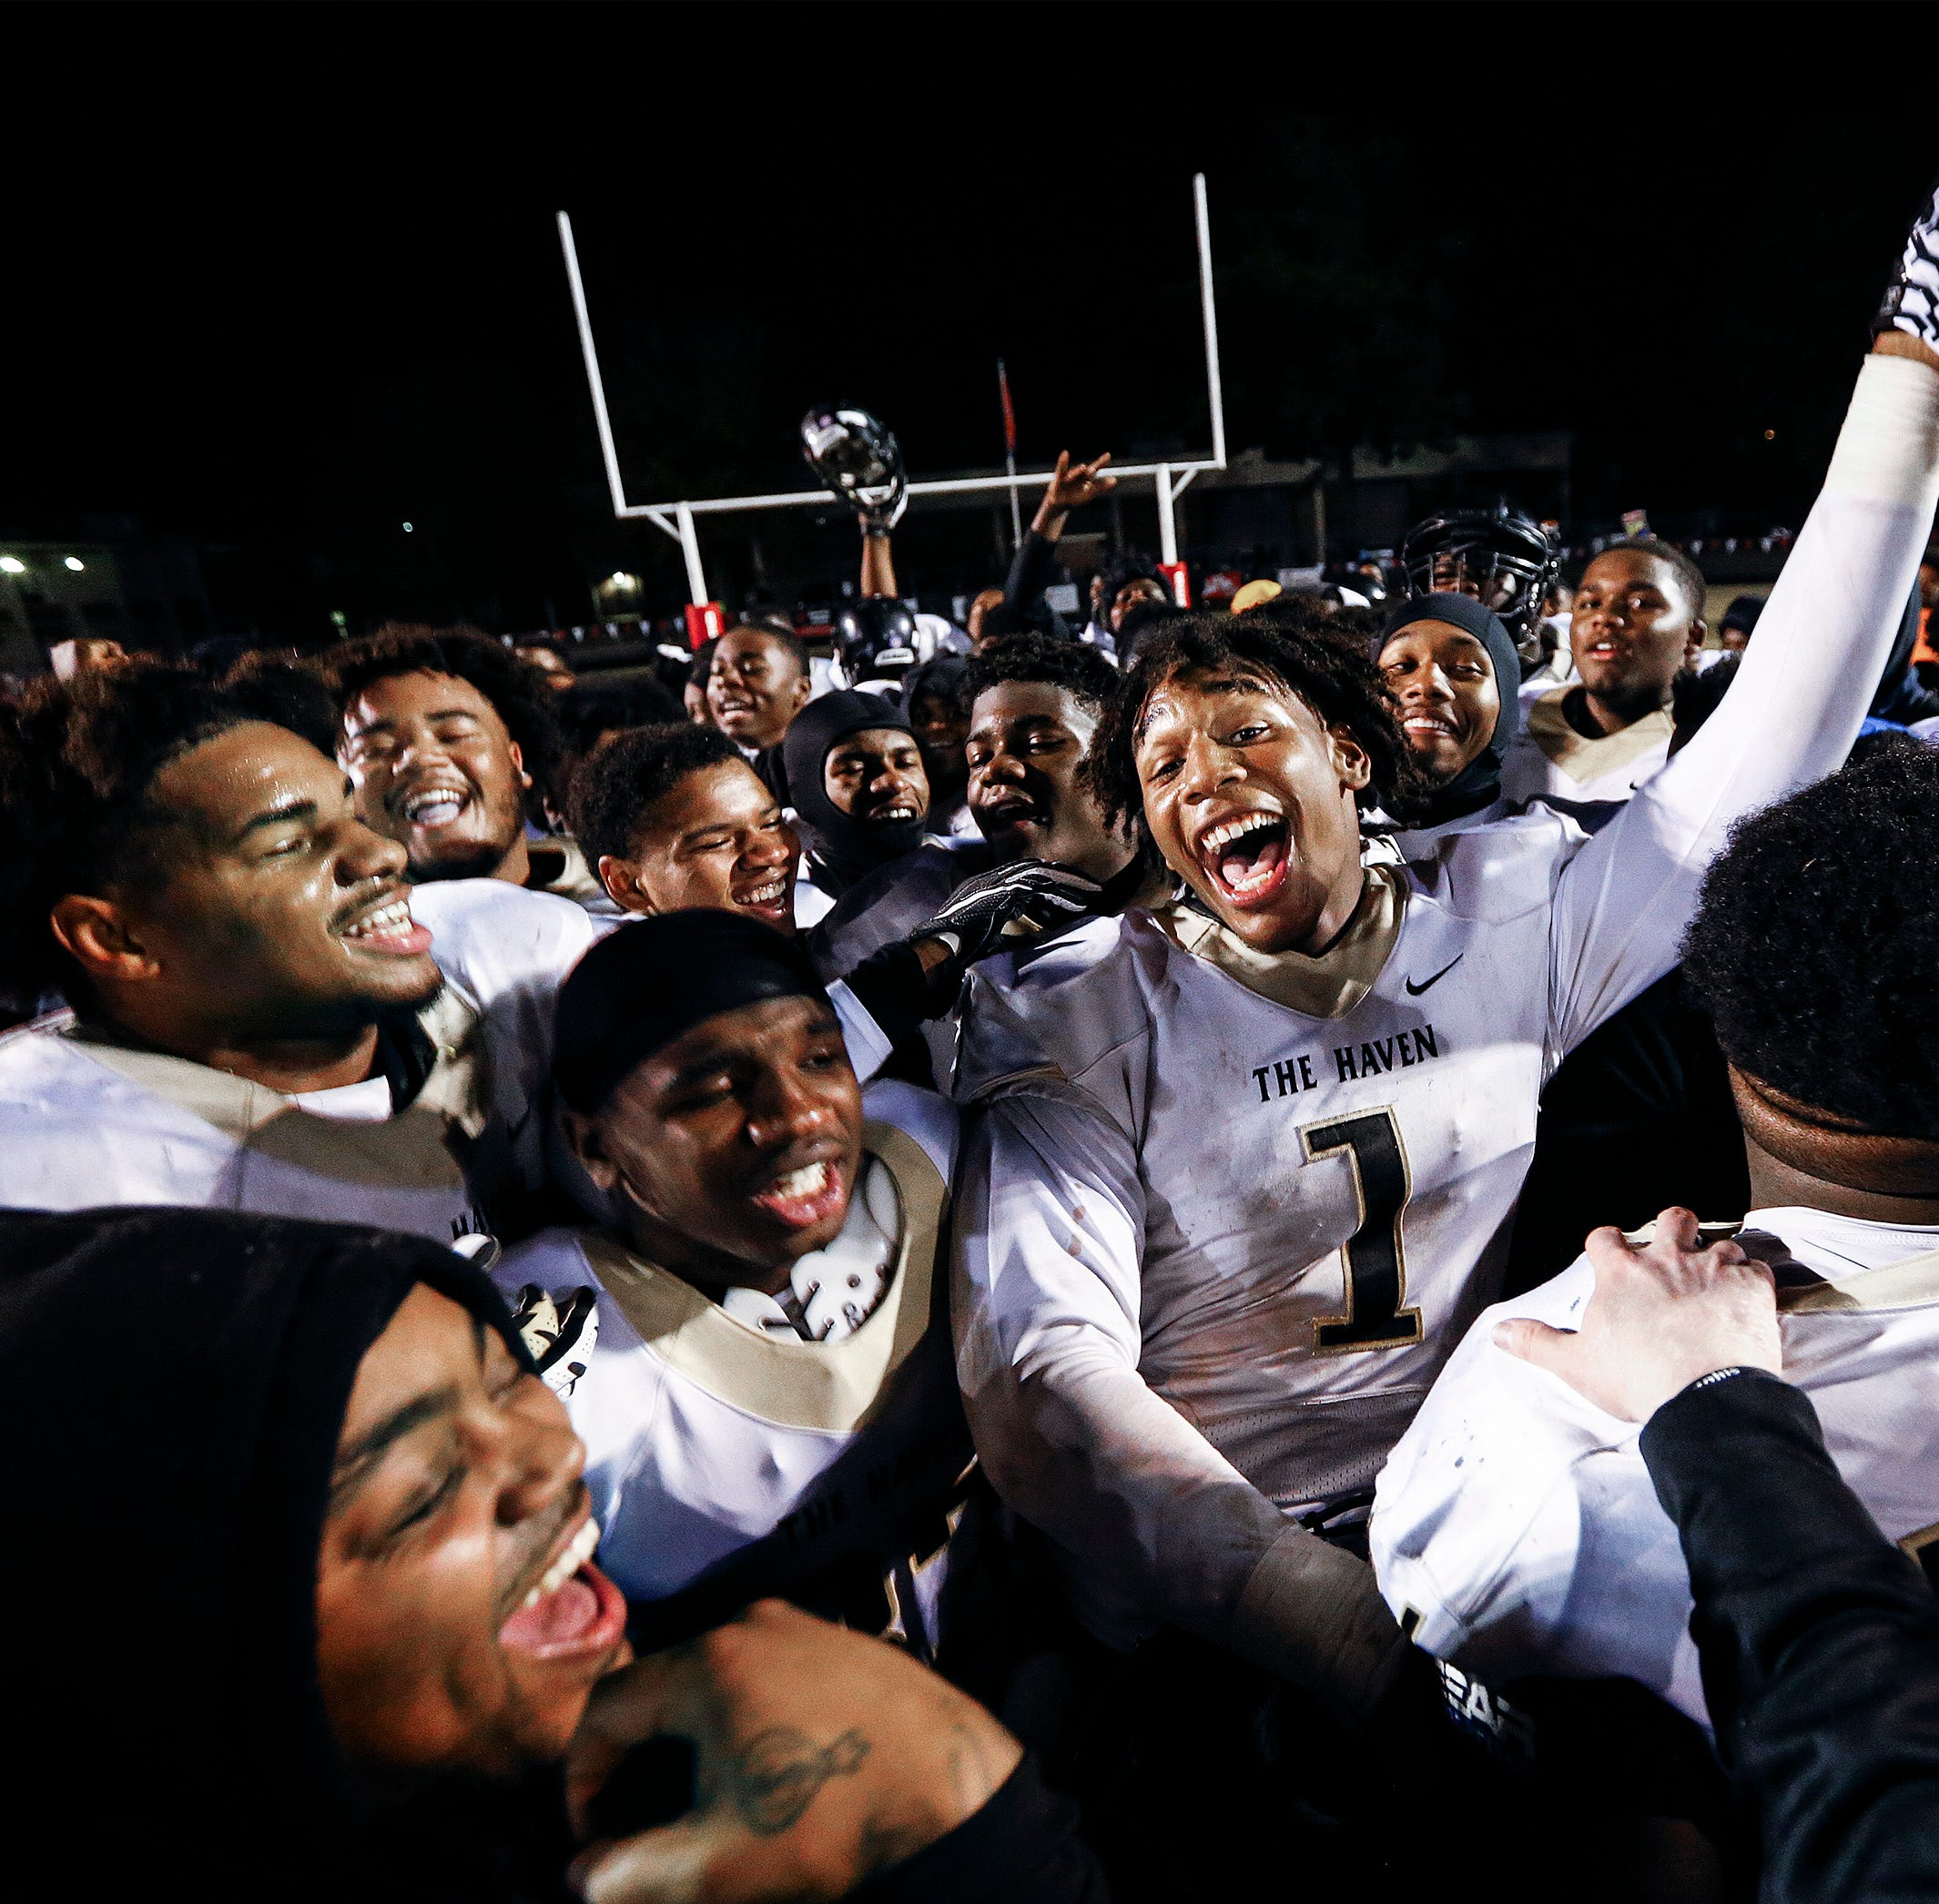 Whitehaven football blanks Germantown, advances to fifth straight semifinal appearance